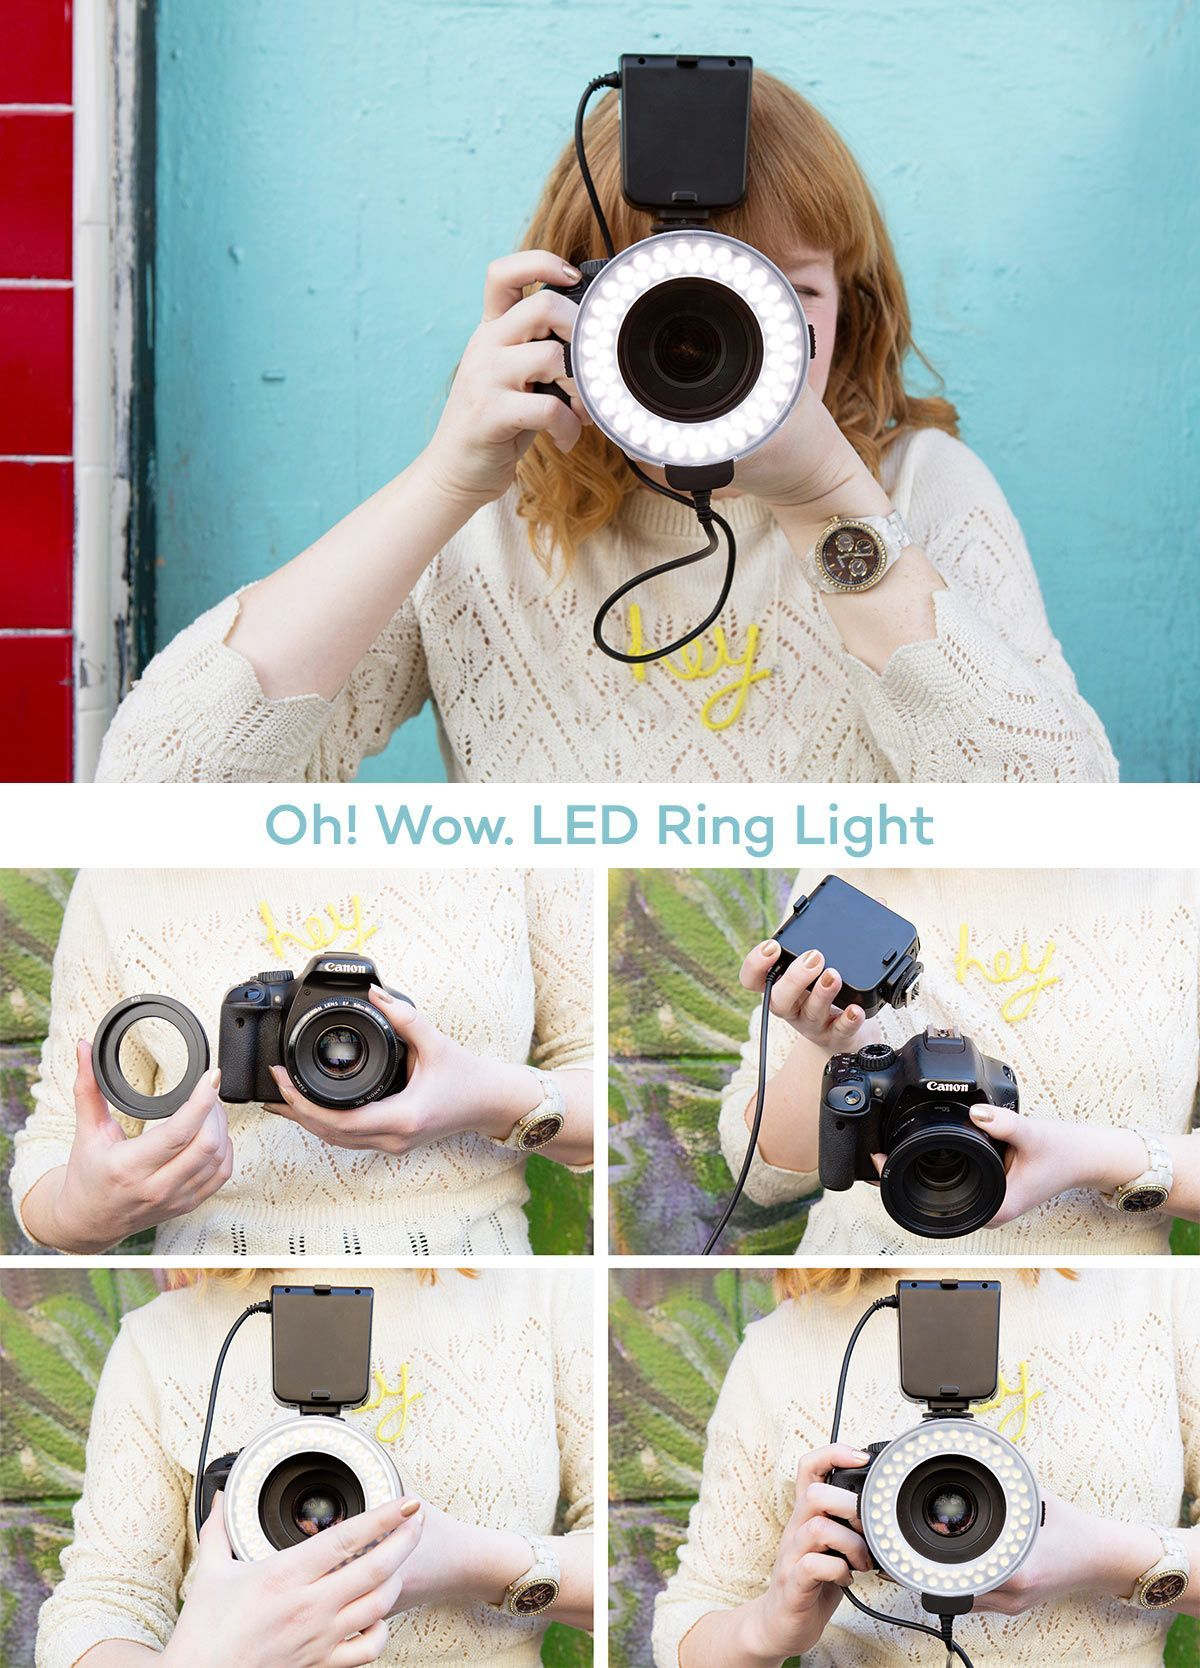 both nikon and canon versions of our popular led ring lights are in